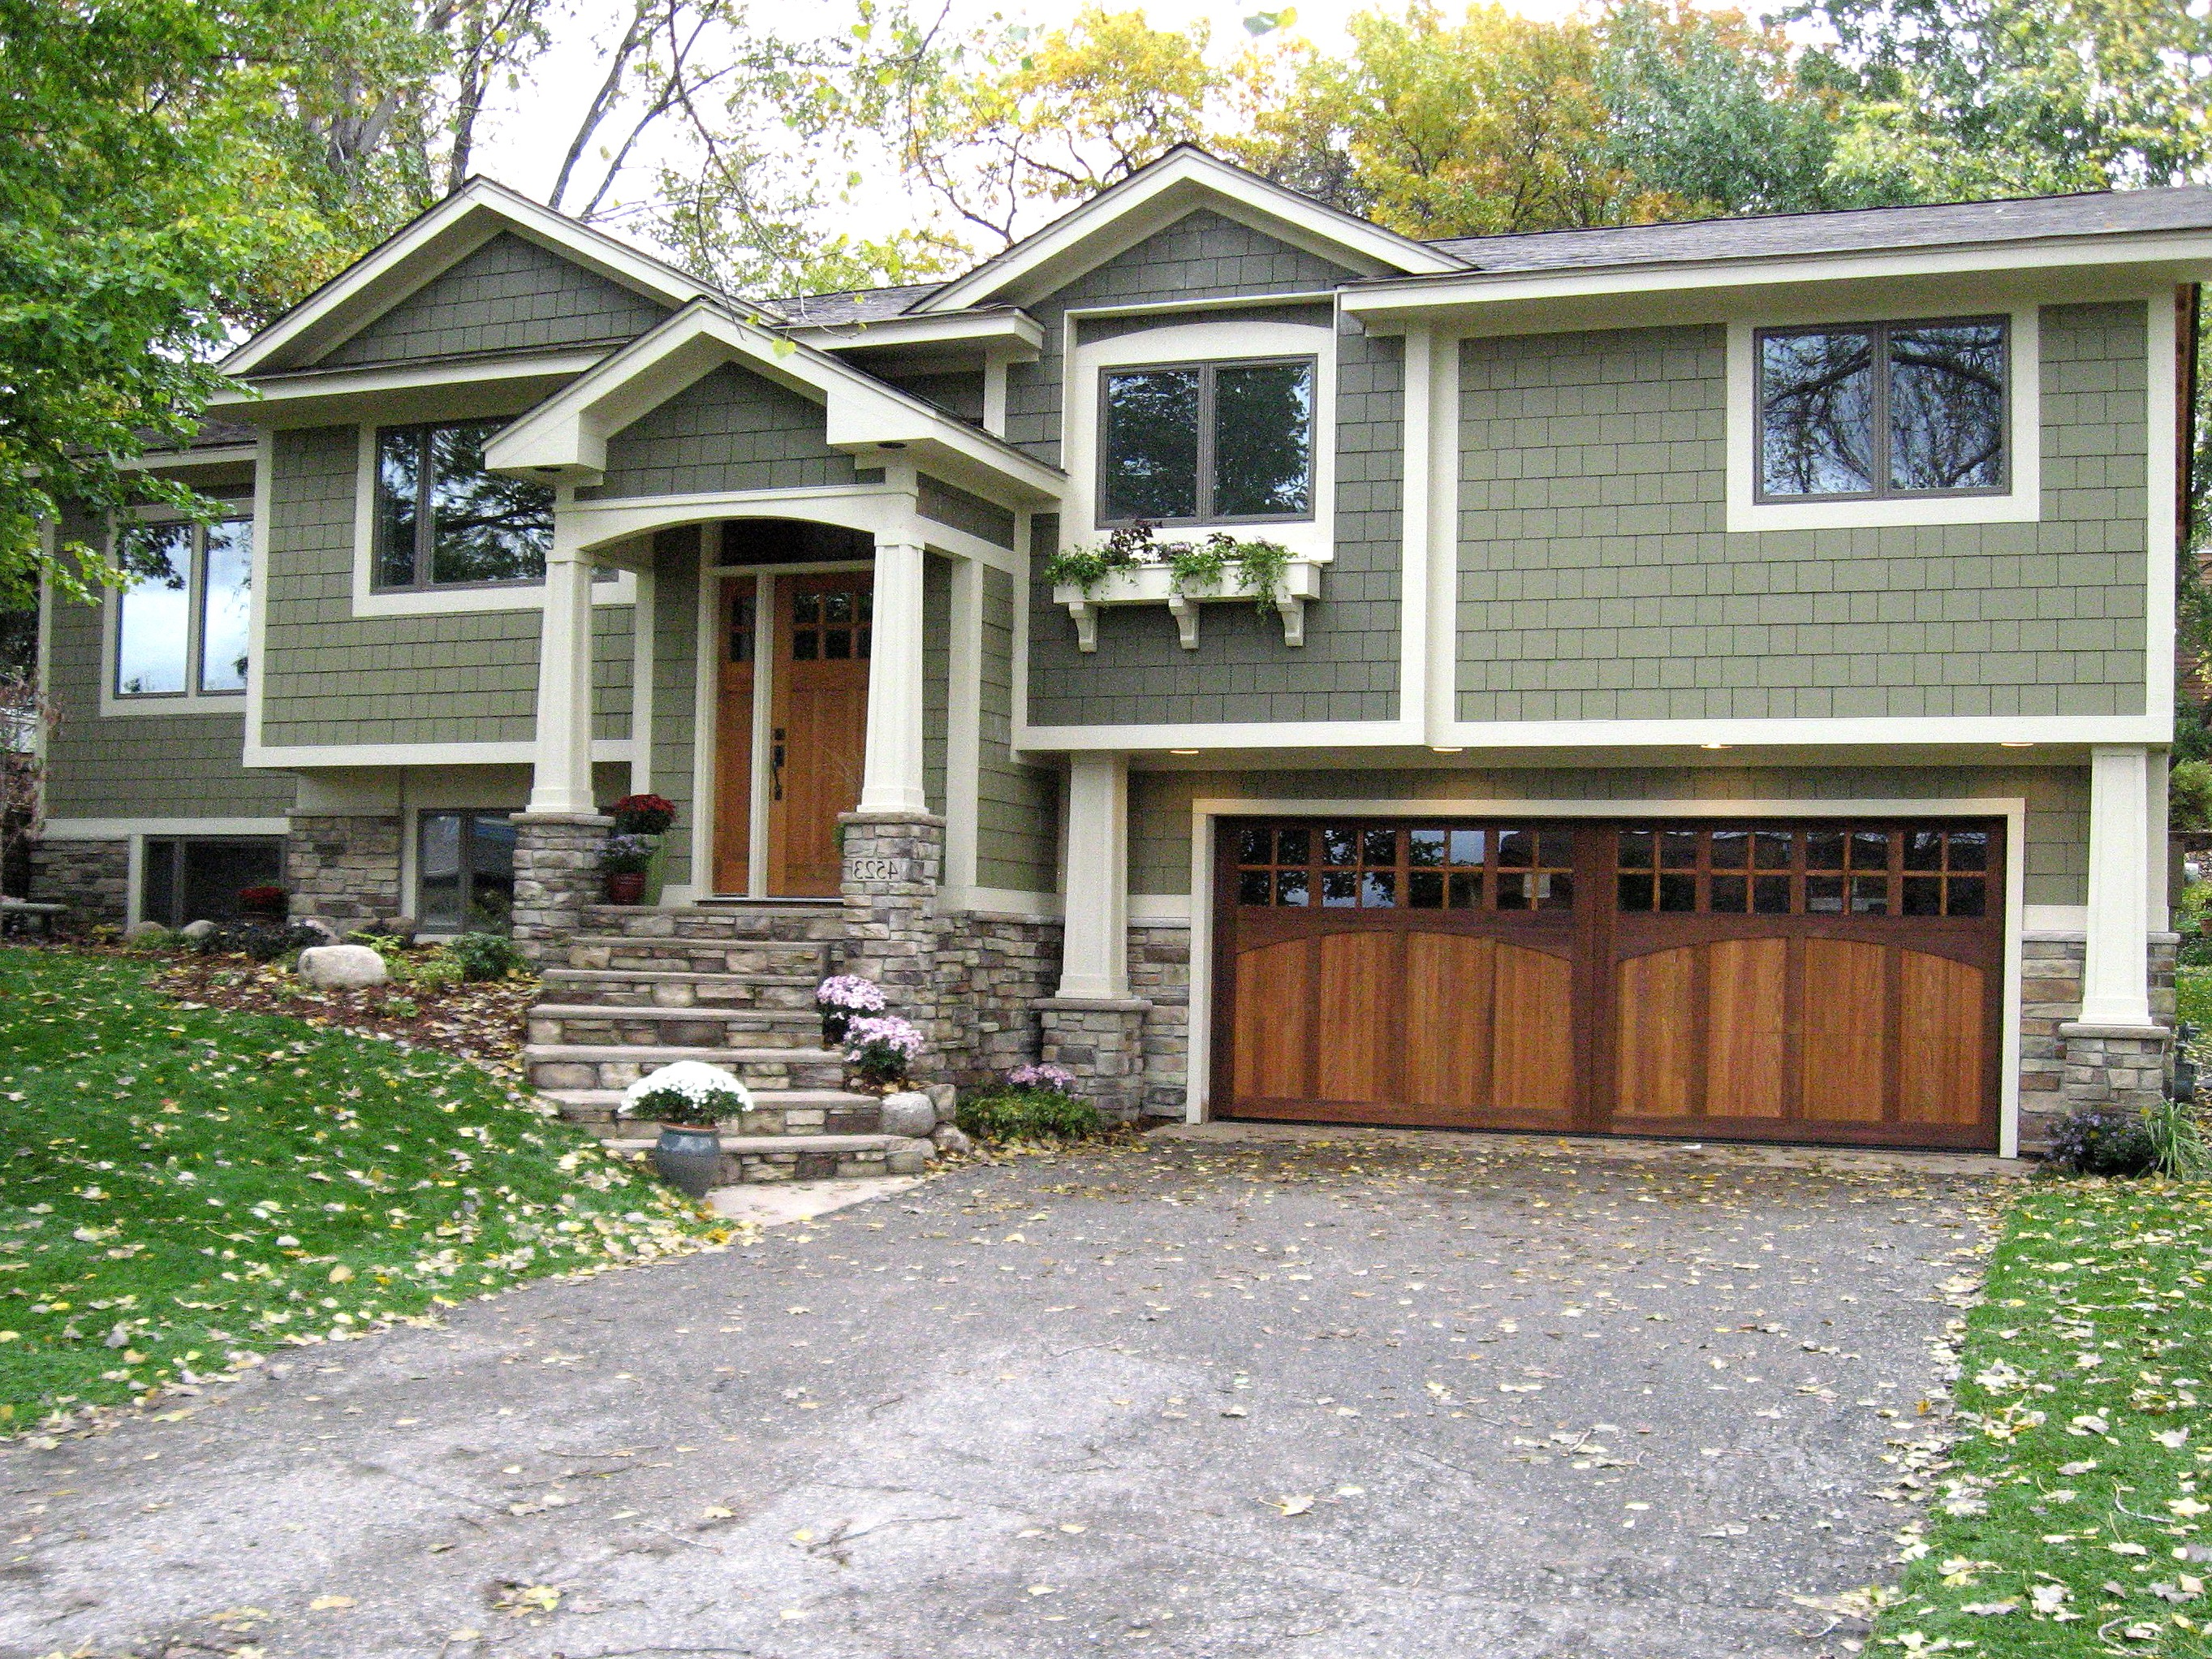 Custom Wooden Carriage Garage Doors For Two Car Garage (Image 12 of 38)